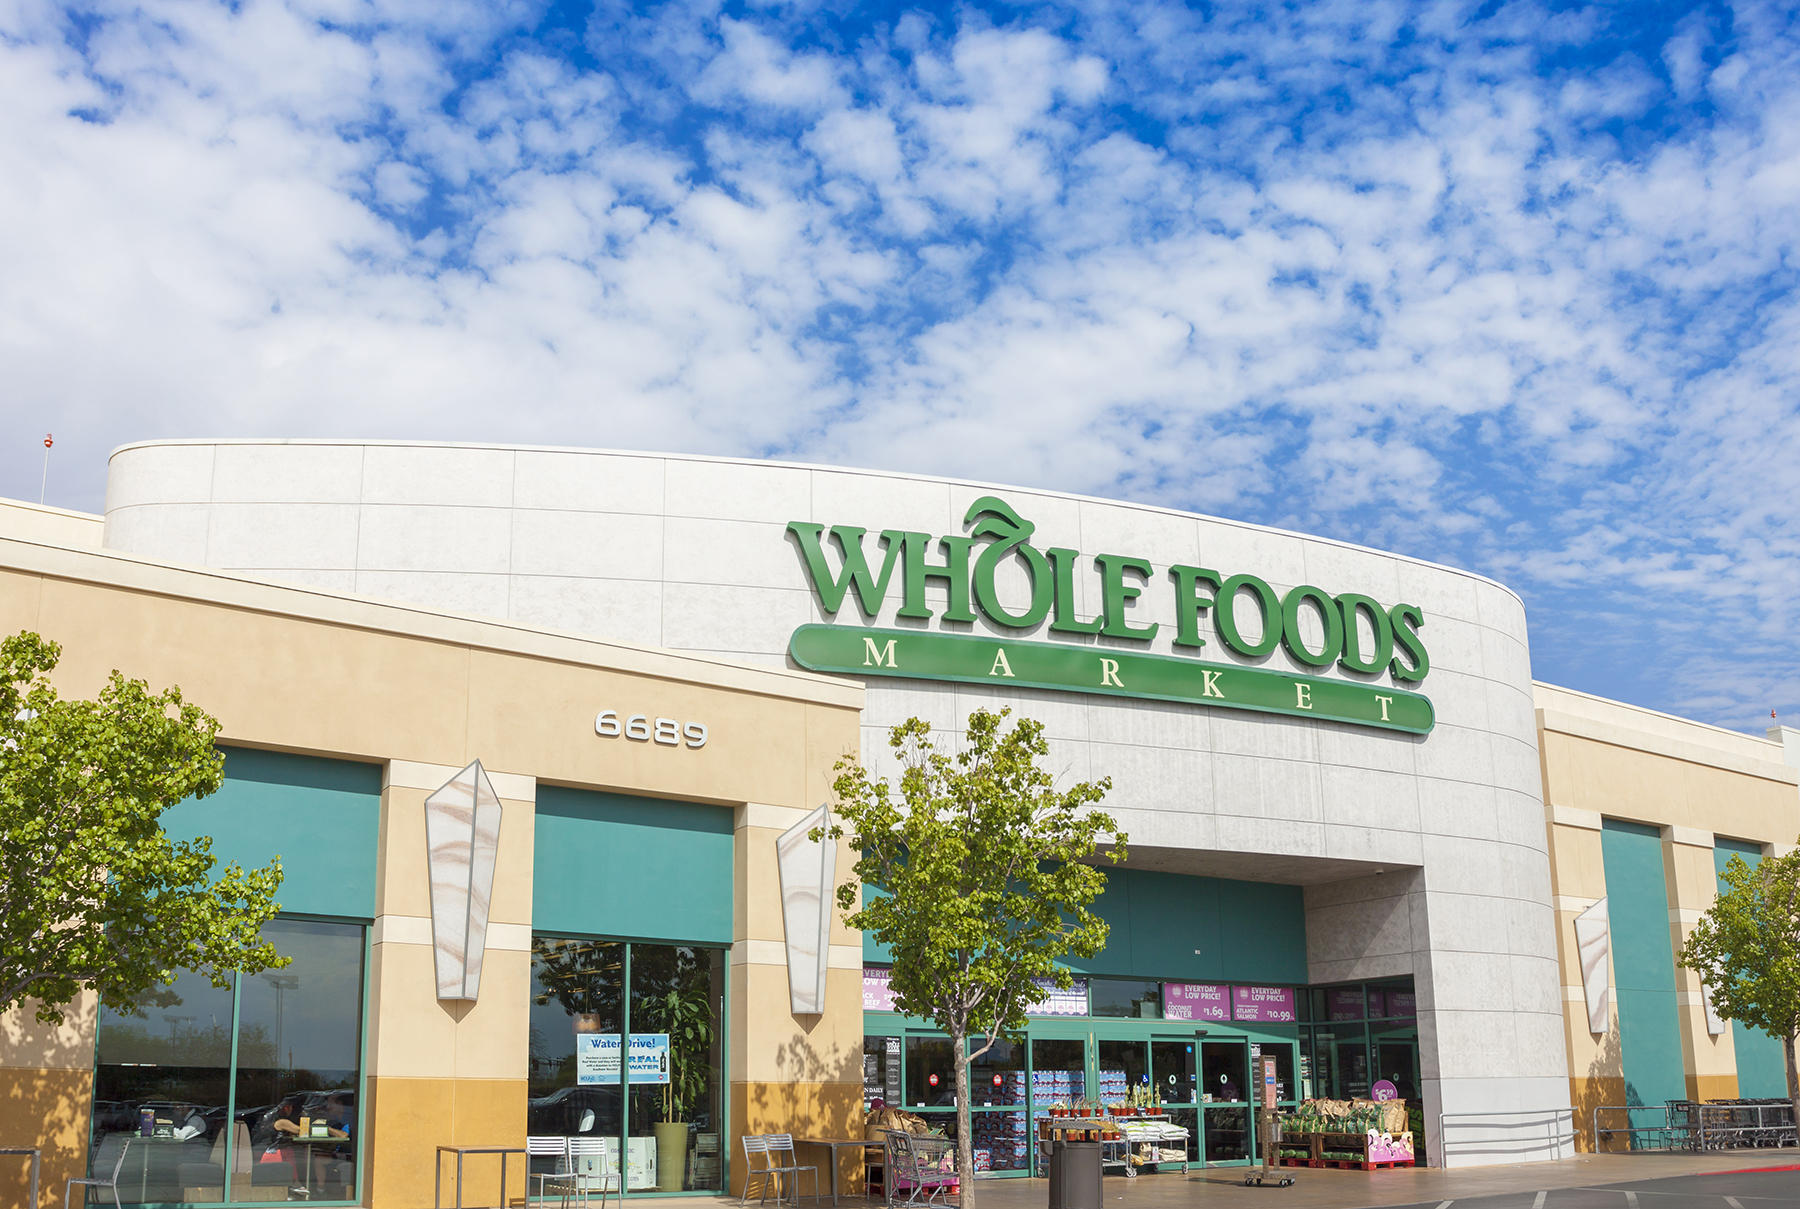 Amazon's two-hour Whole Foods deliveries are coming to more cities